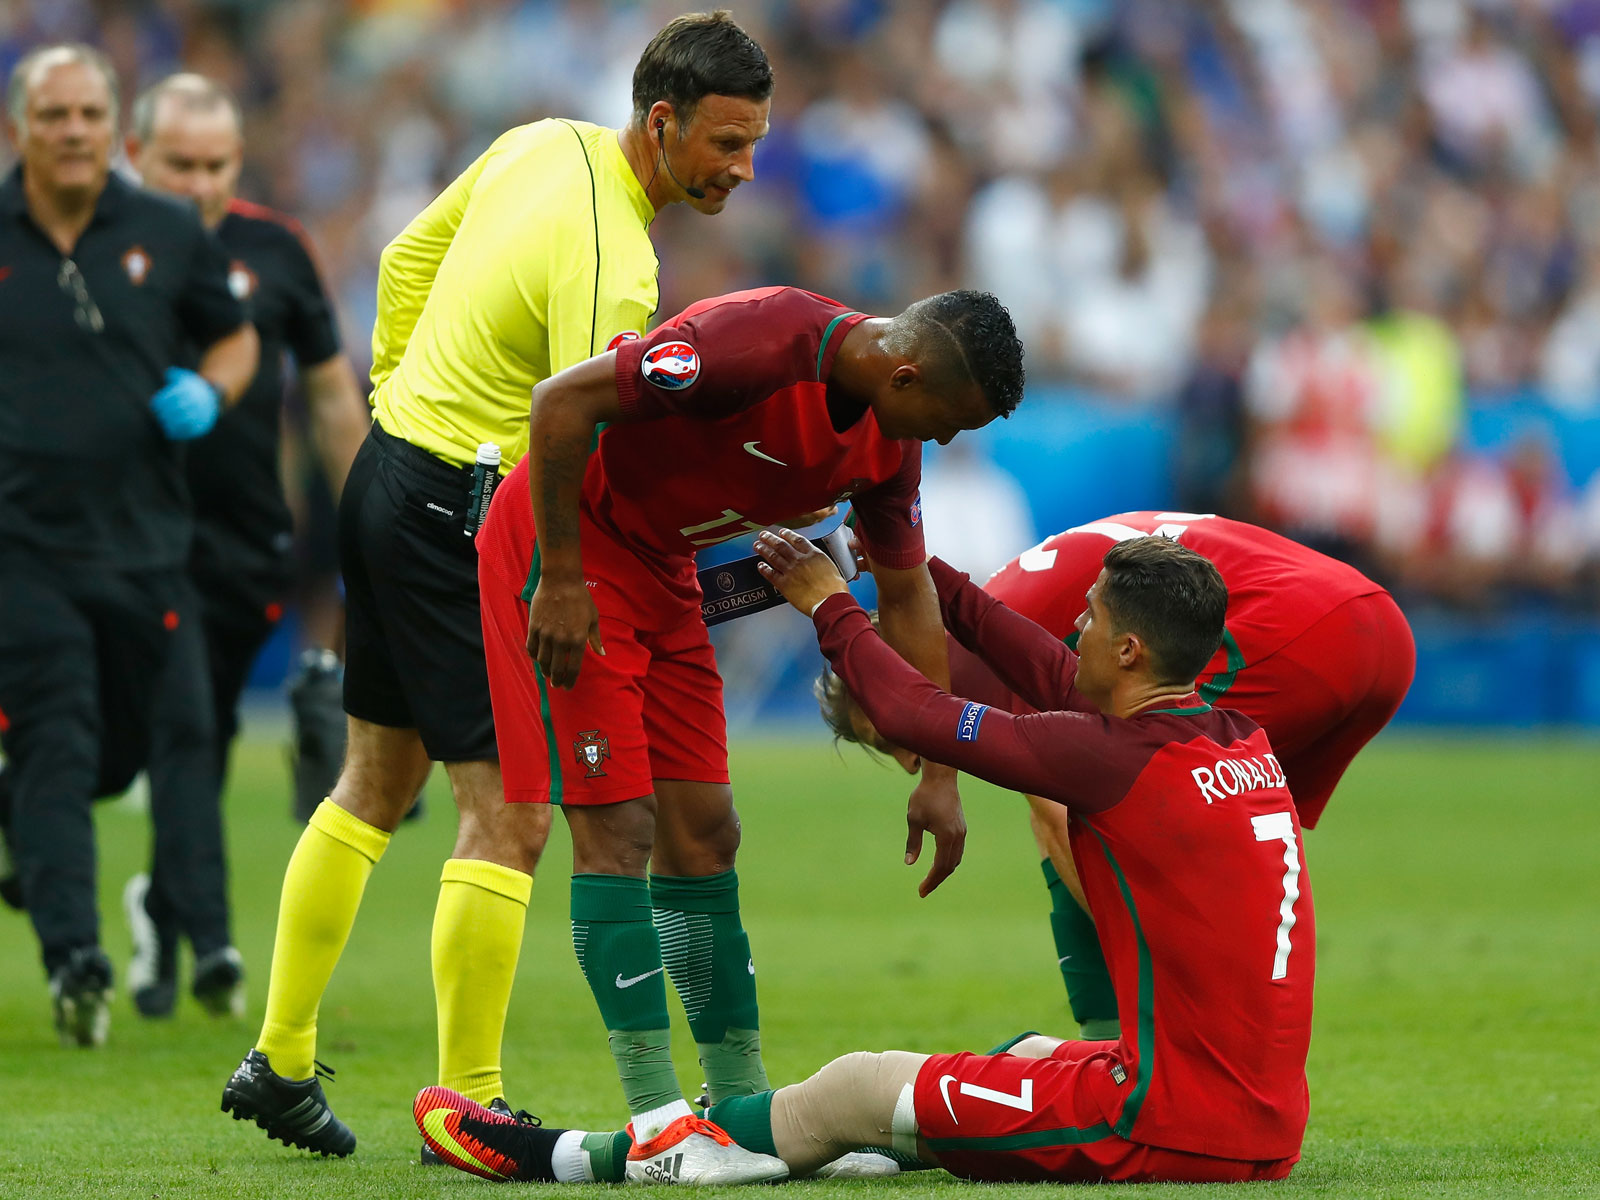 Nani takes the Portugal captain's armband from Cristiano Ronaldo in the Euro 2016 final